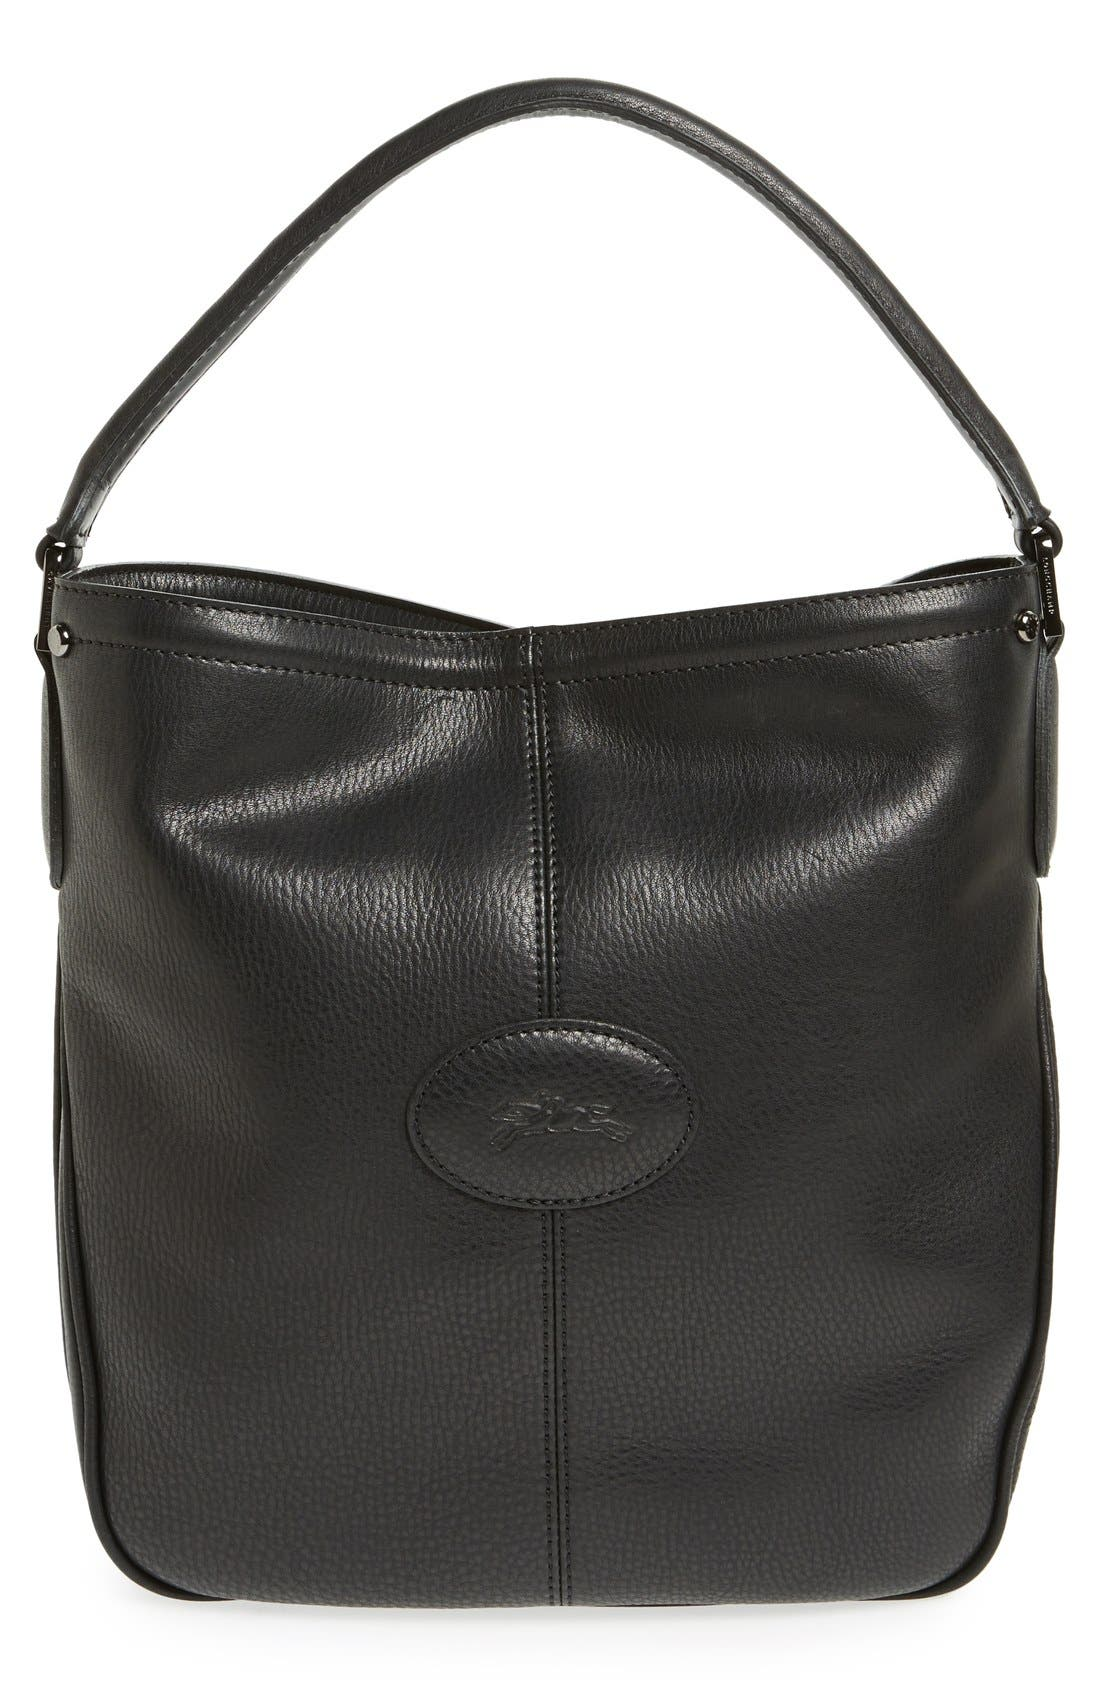 LONGCHAMP 'Mystery' Leather Hobo